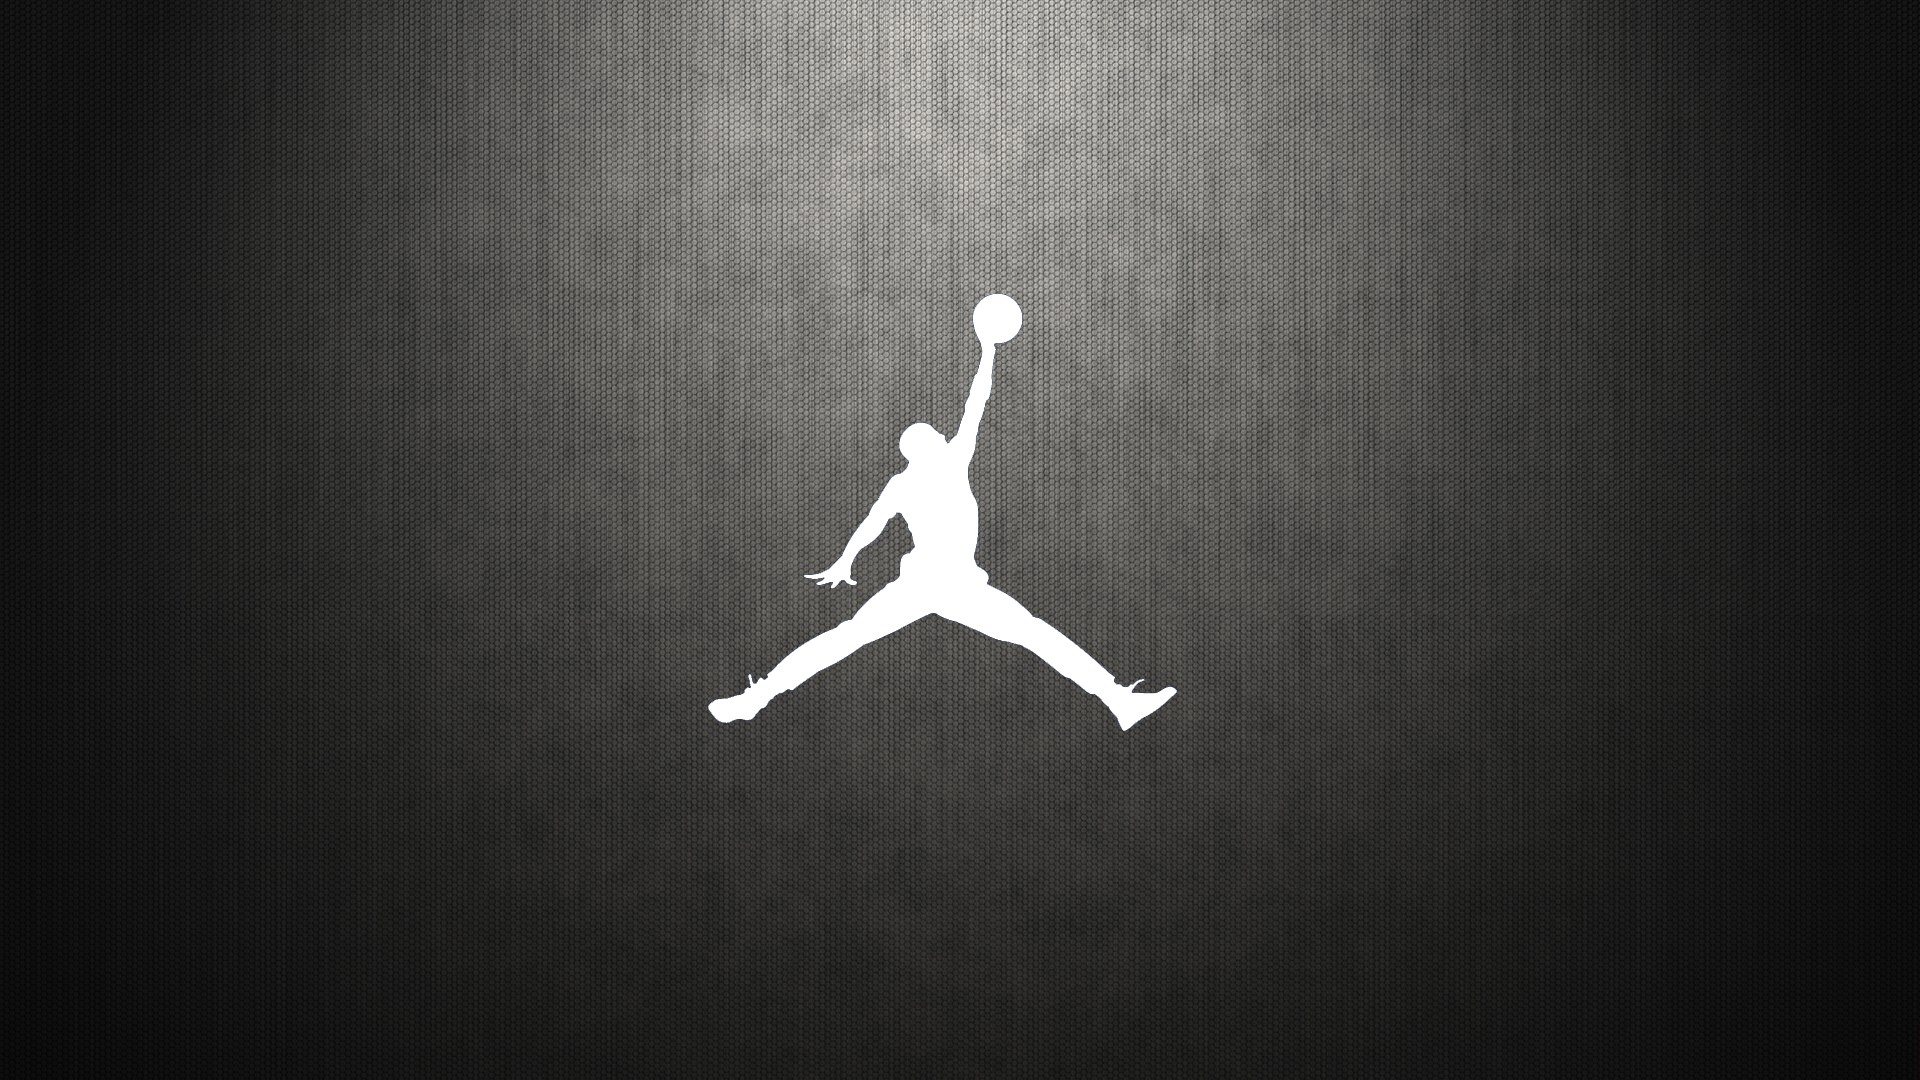 super popular 0ddc0 4dc4d Jordan logo wallpapers